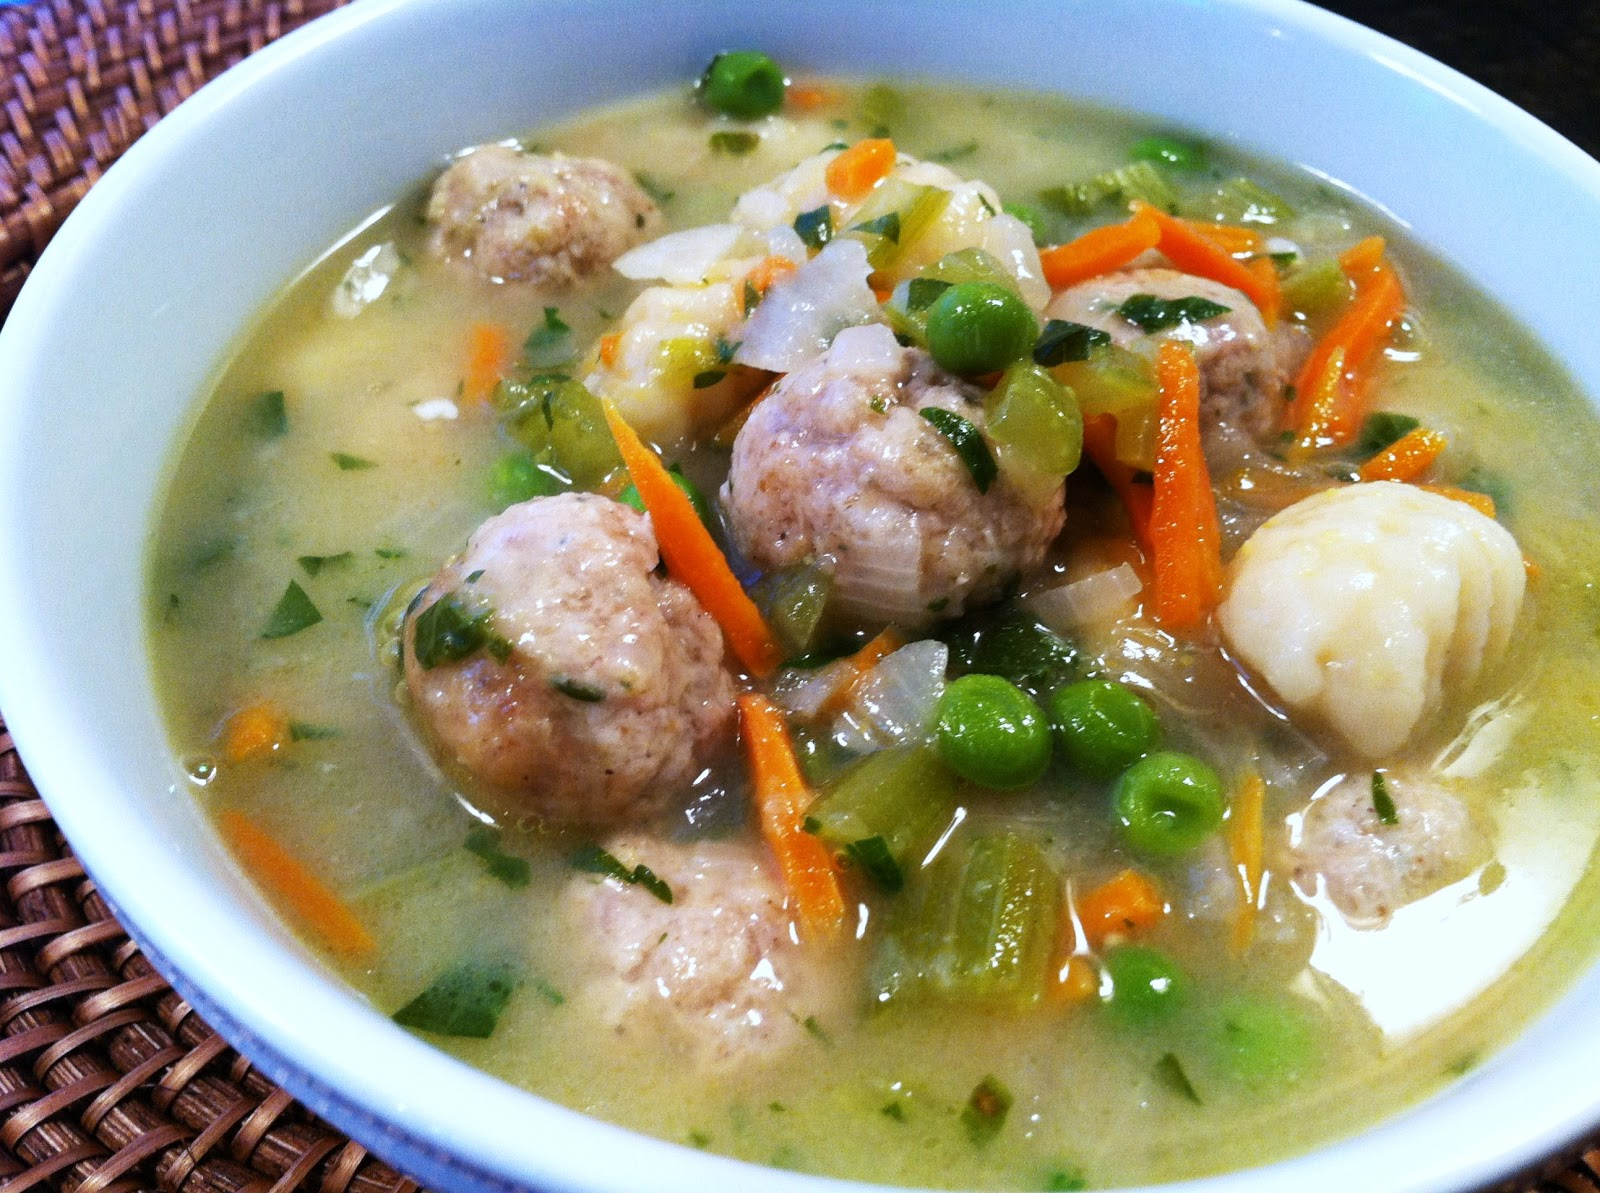 Everything Tasty from My Kitchen: Italian Wedding Soup